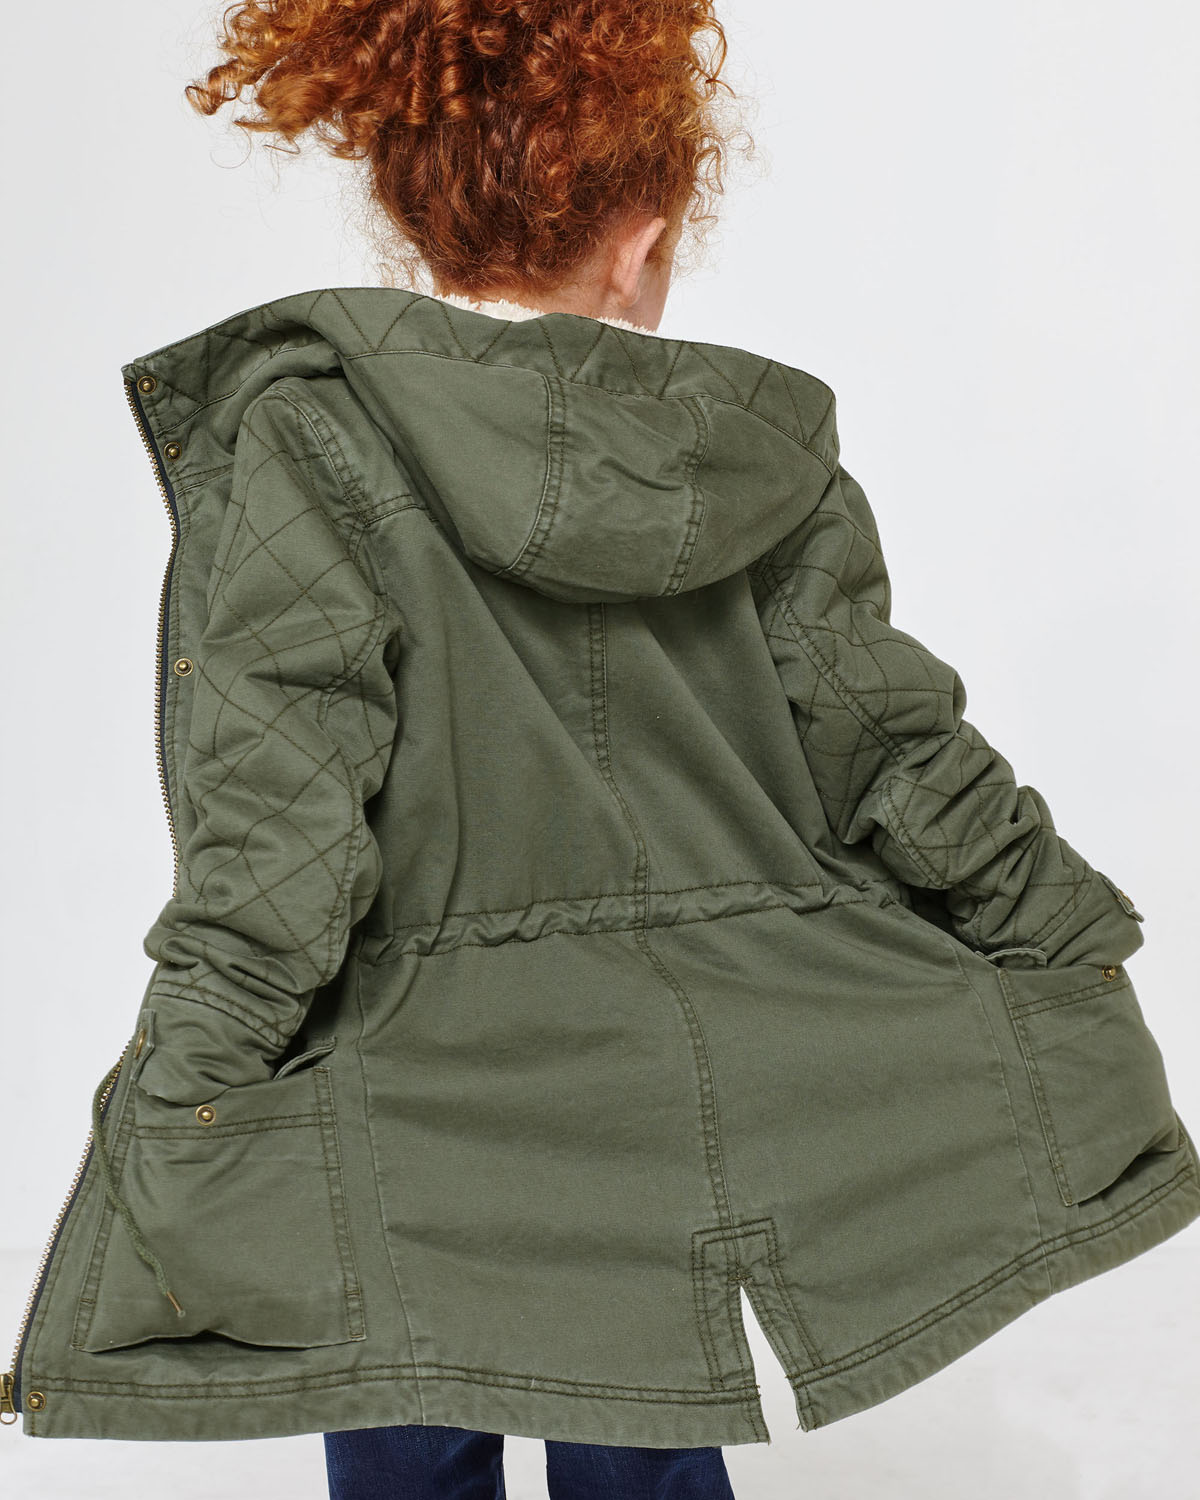 Find a great selection of women's parkas at tennesseemyblogw0.cf Shop top brands like Burberry Brit, The North Face & more. Totally free shipping & returns.